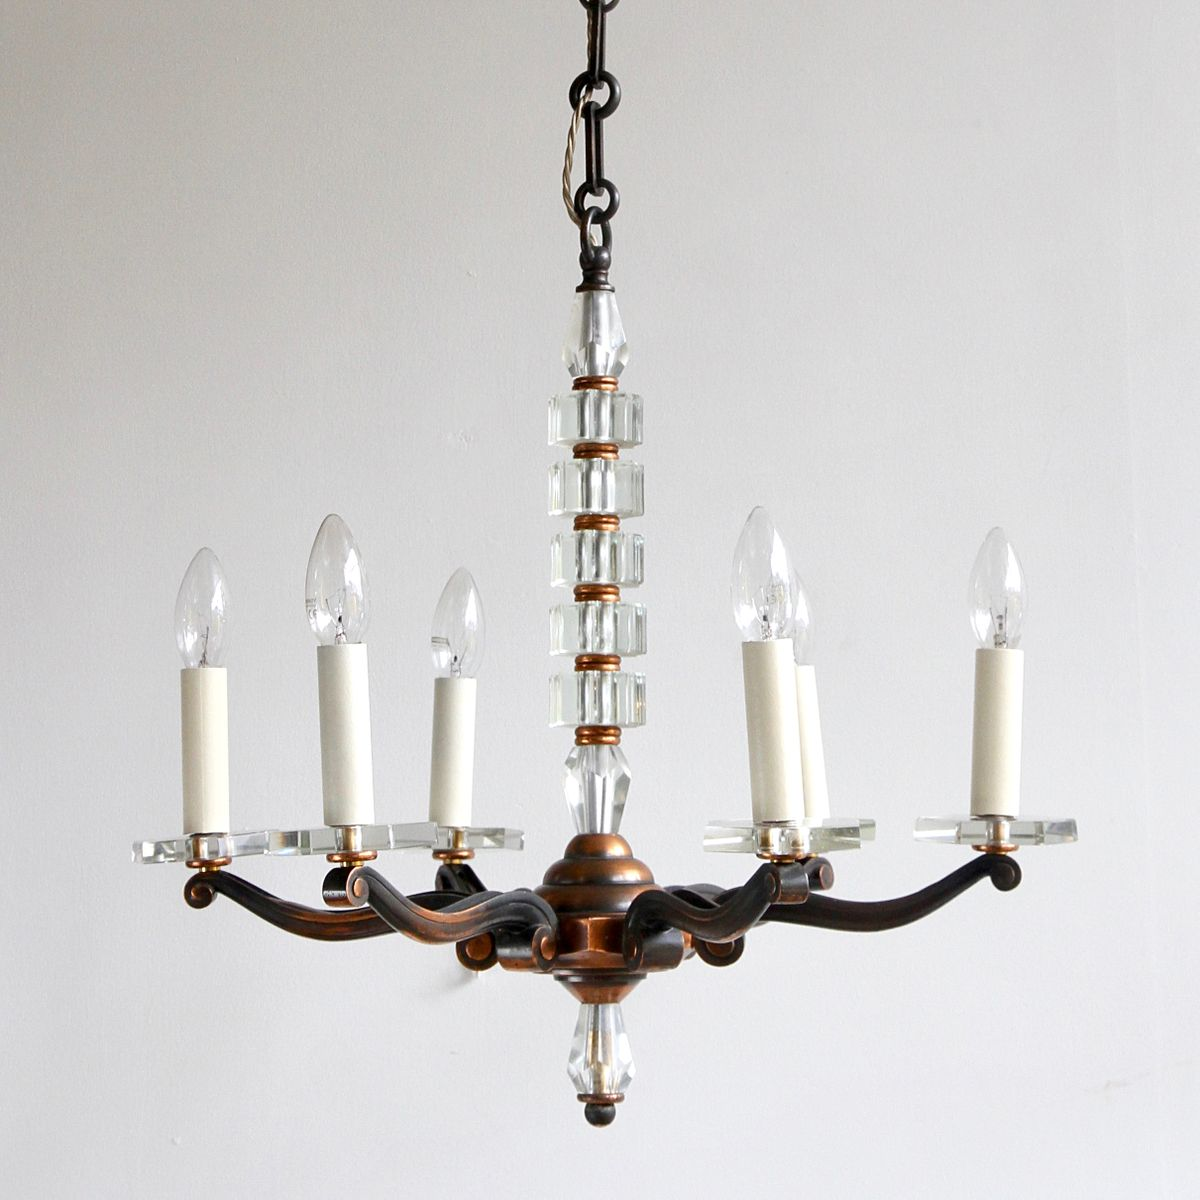 Copper and crystal chandelier 1930s for sale at pamono copper and crystal chandelier 1930s mozeypictures Gallery